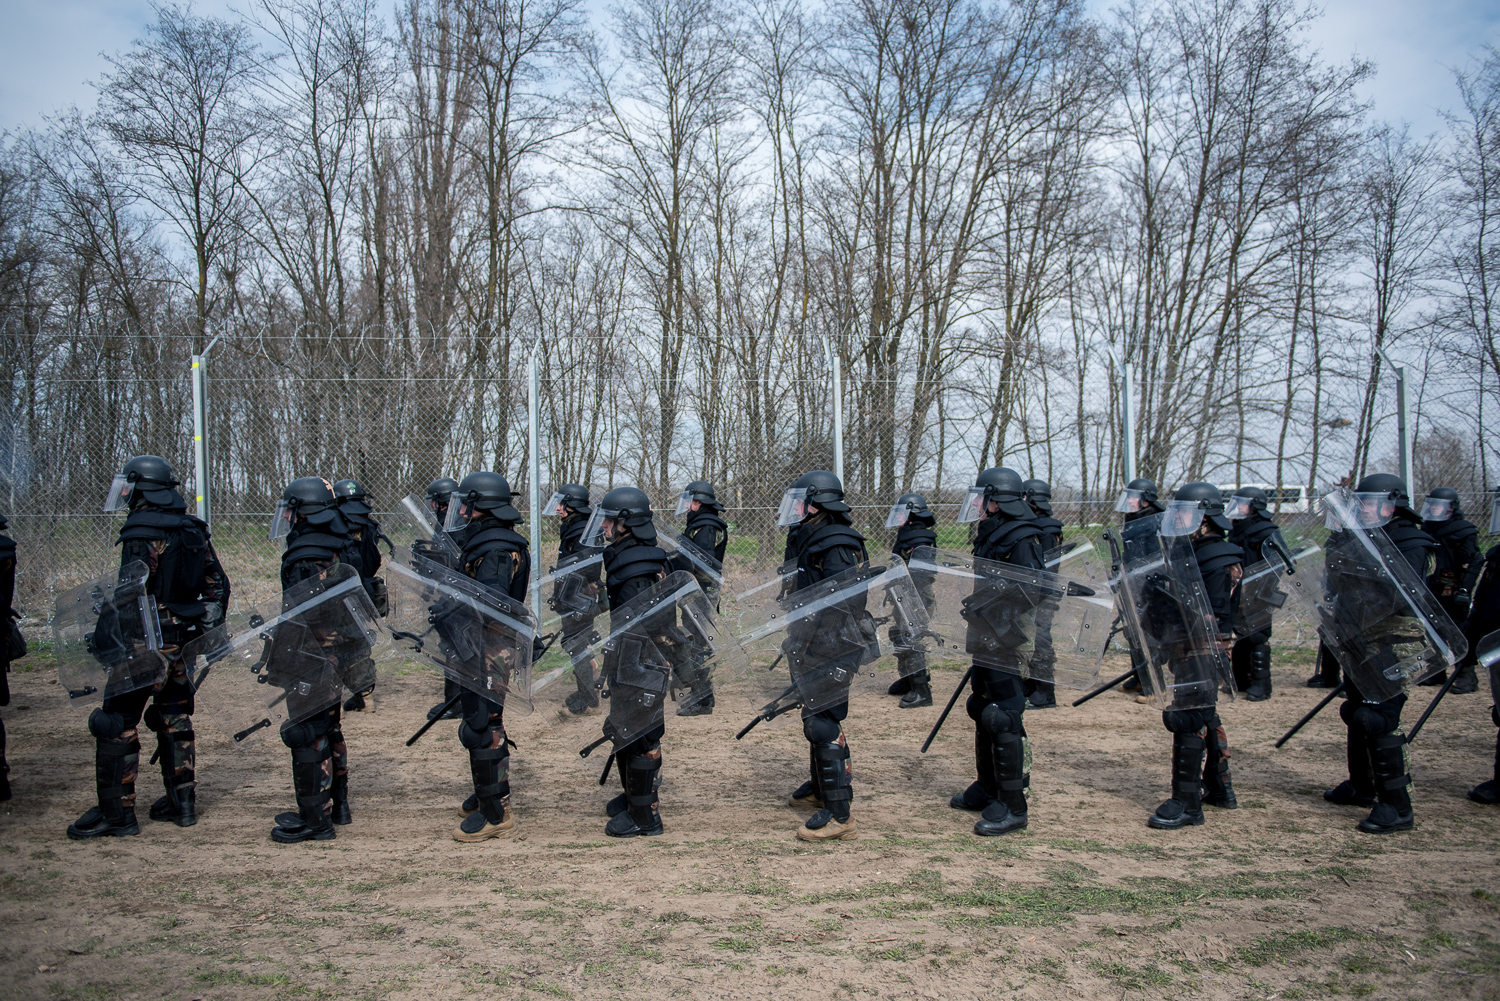 Riot soldiers stand in front of a practice fence at a military practice  near Kelebia, Hungary 22 March 2018. The fence was constructed in the middle of the European migration crisis in 2015, with the aim to ensure border security by preventing immigrants from entering the country and the European Union illegally.